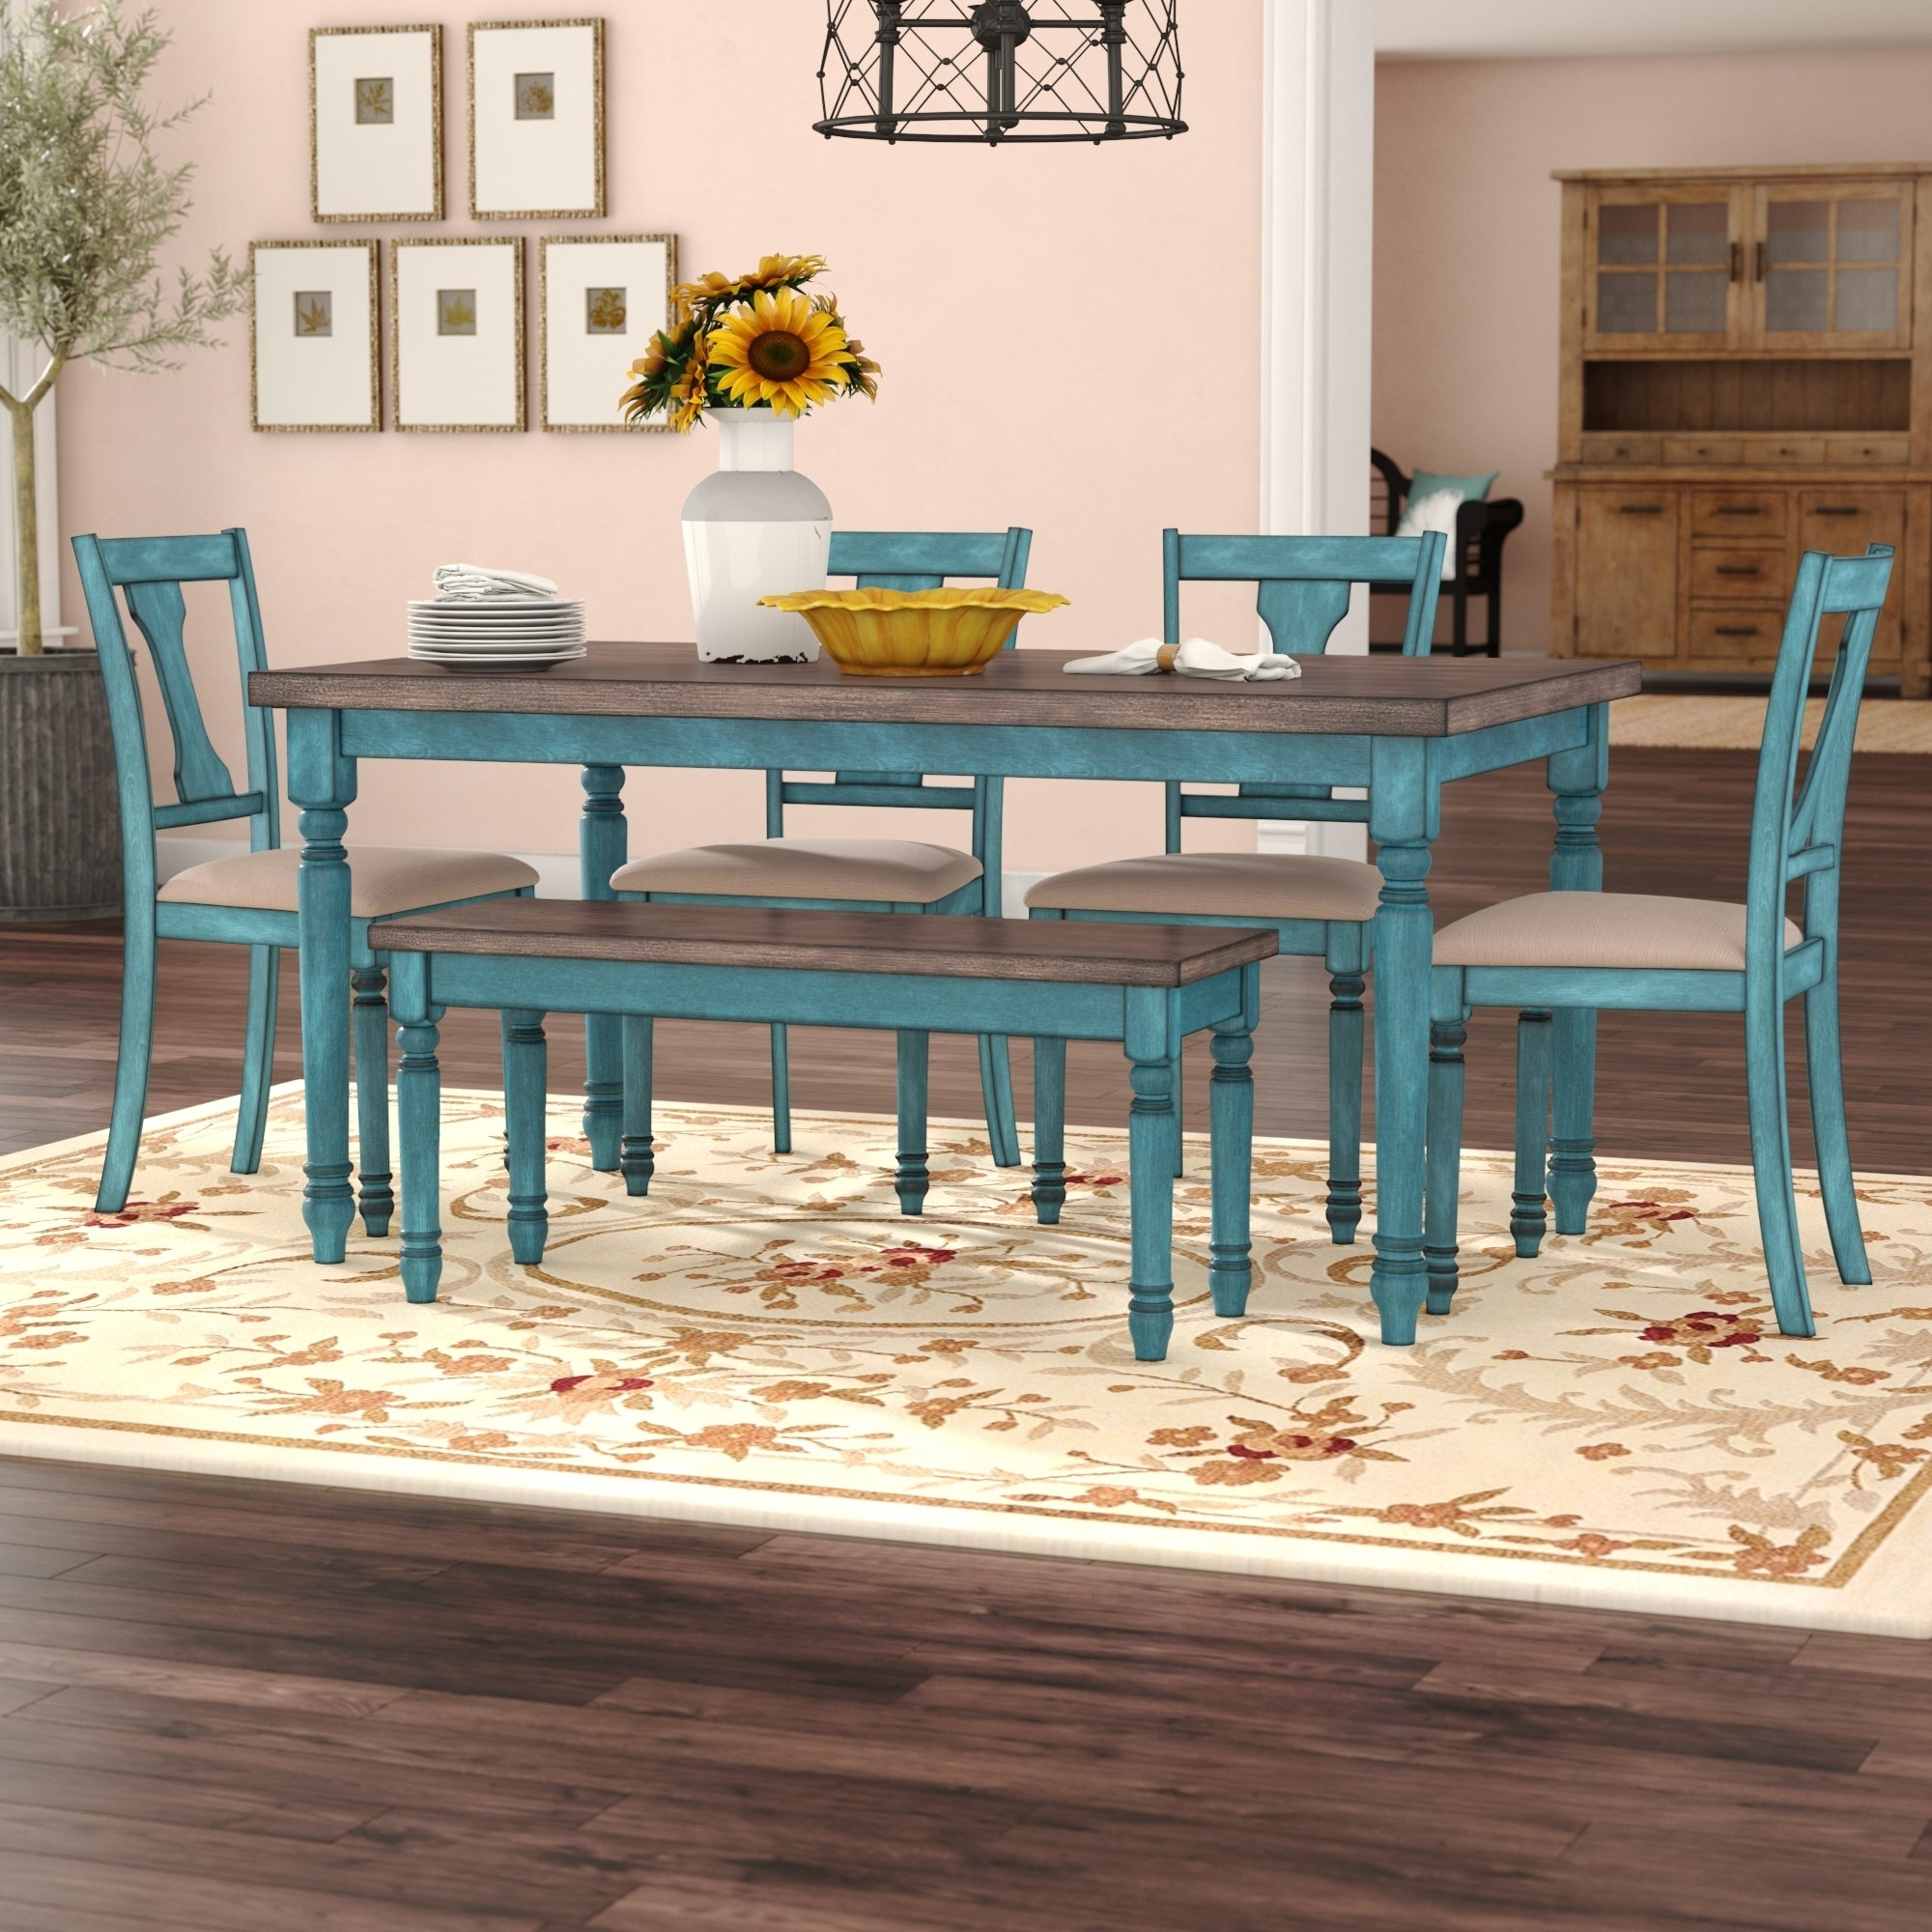 August Grove Scarlet 6 Piece Dining Set & Reviews | Wayfair within Marbled Axton Sideboards (Image 7 of 26)